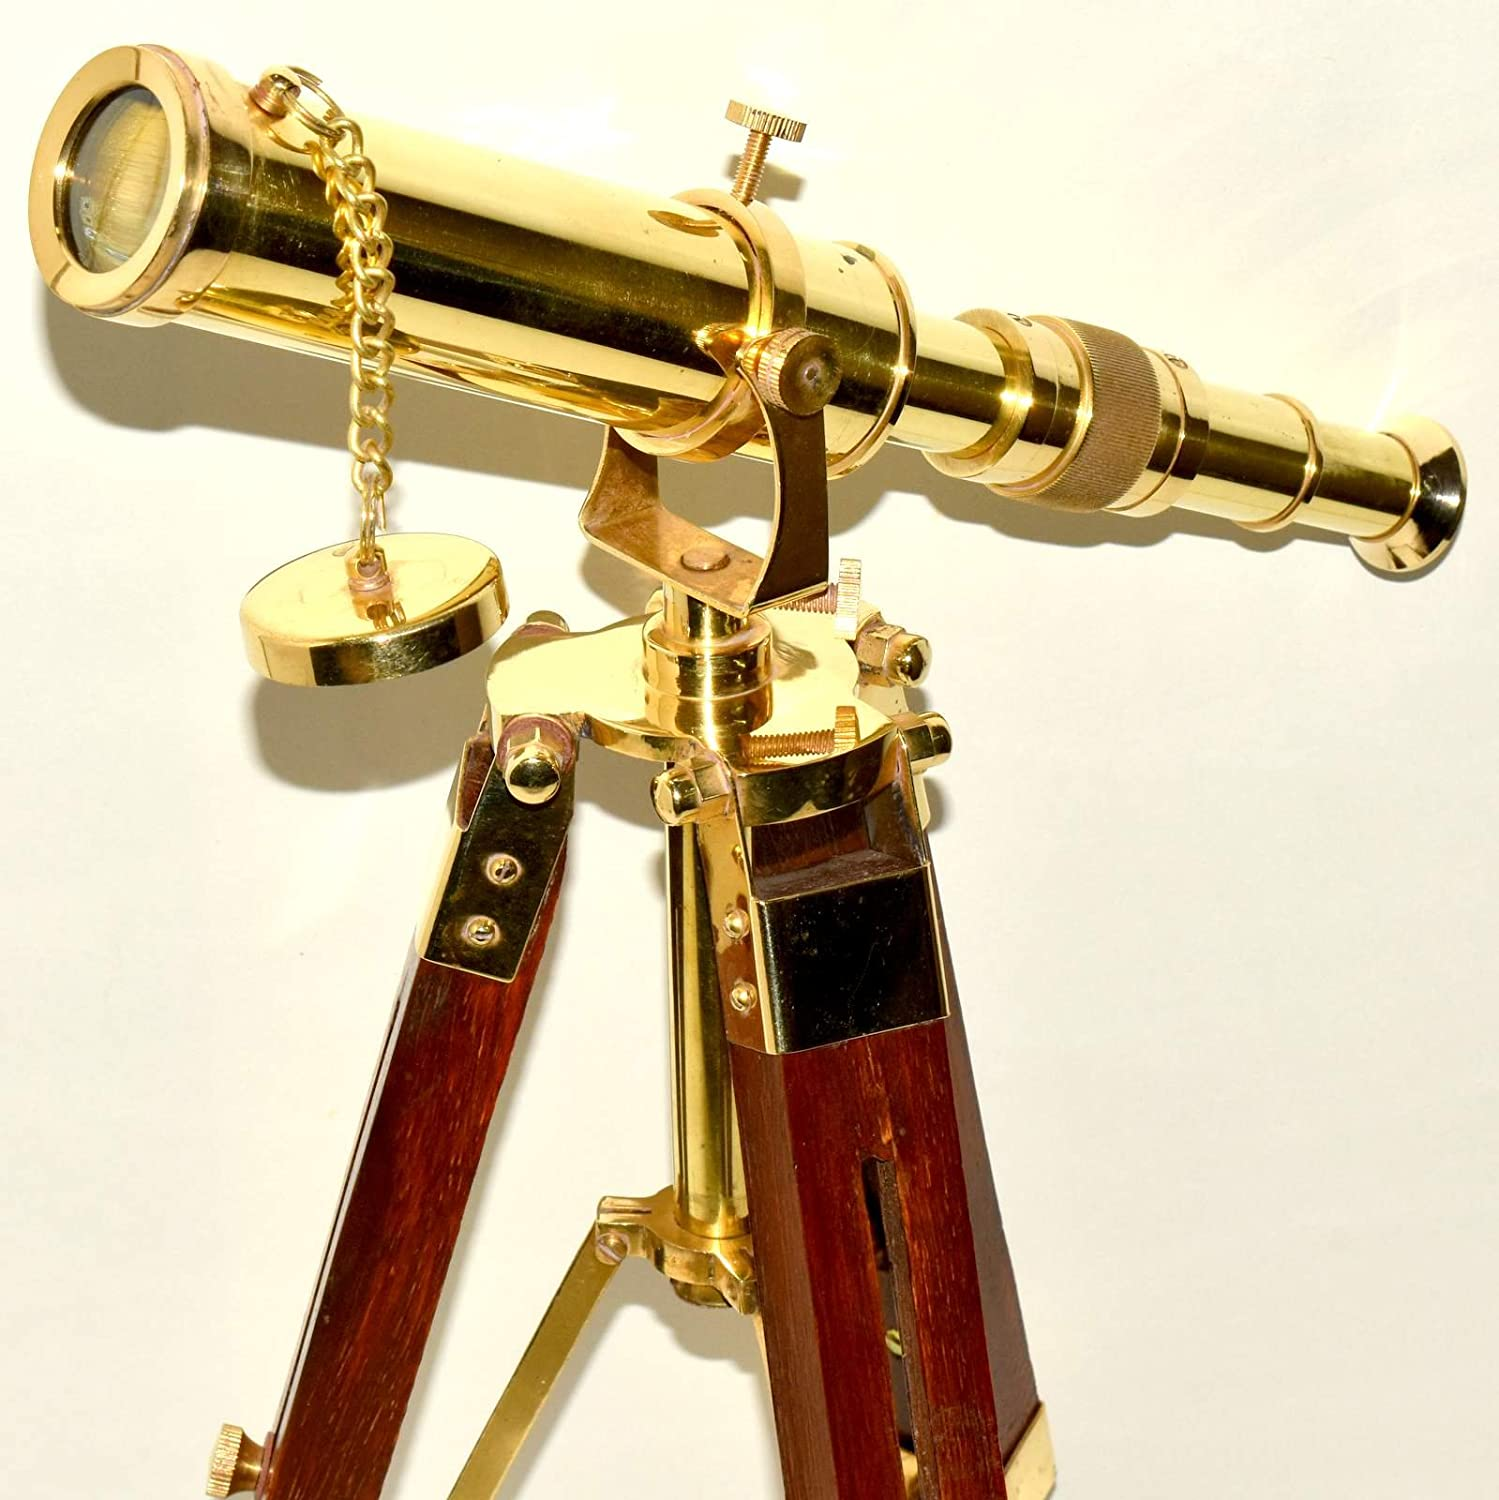 Nautical Vintage Navy Marine Brass Telescope with Wooden Tripod Stand